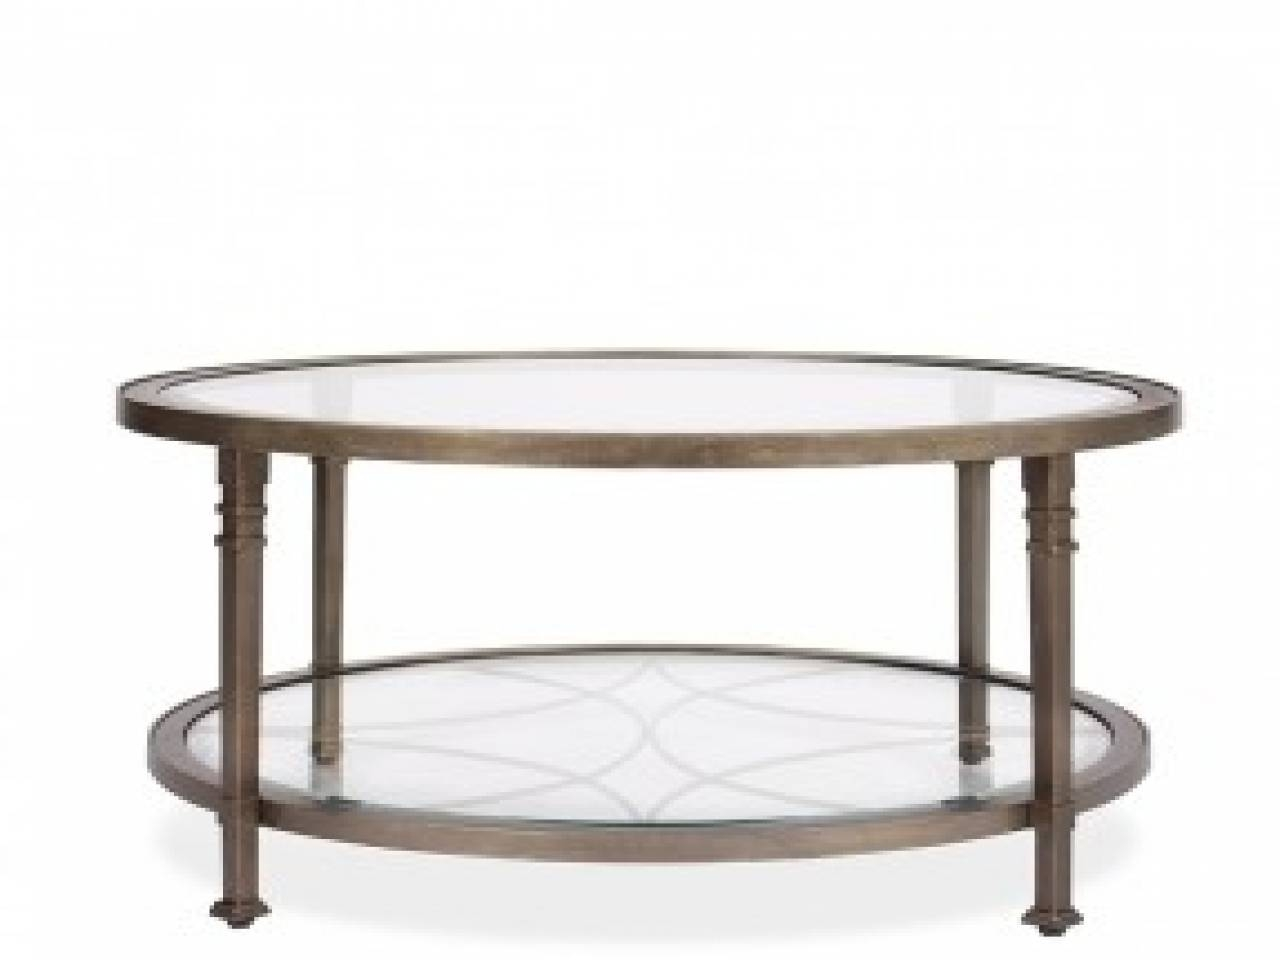 Round Industrial Coffee Table Metal Glass Coffee Tables Round inside Circular Glass Coffee Tables (Image 24 of 30)